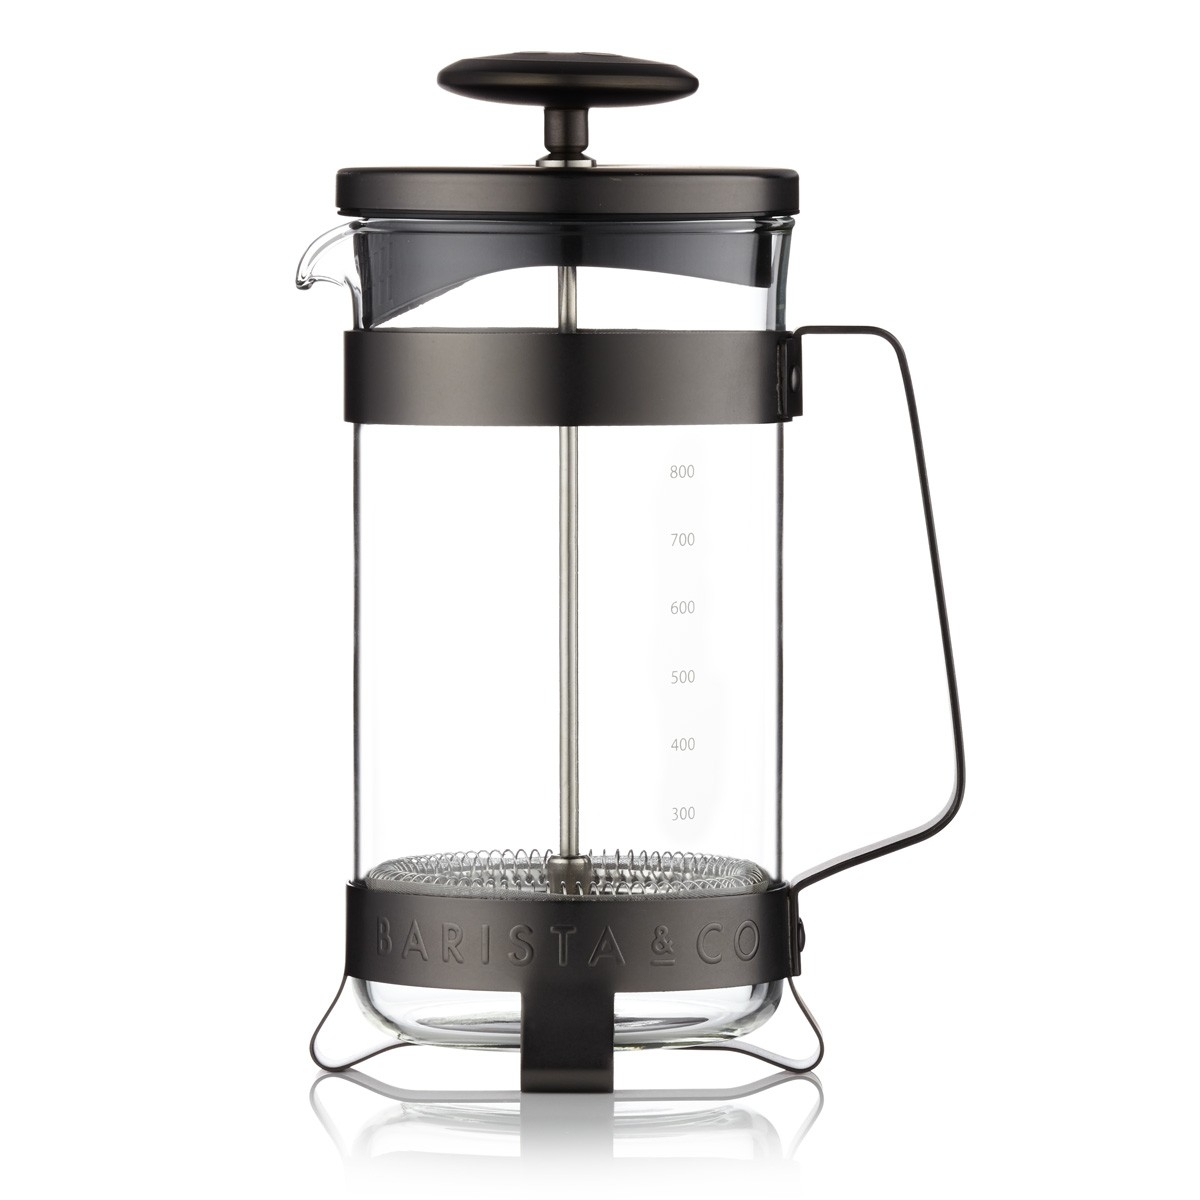 Barista & Co French press, 800 ml - Gunmetal BC002-004